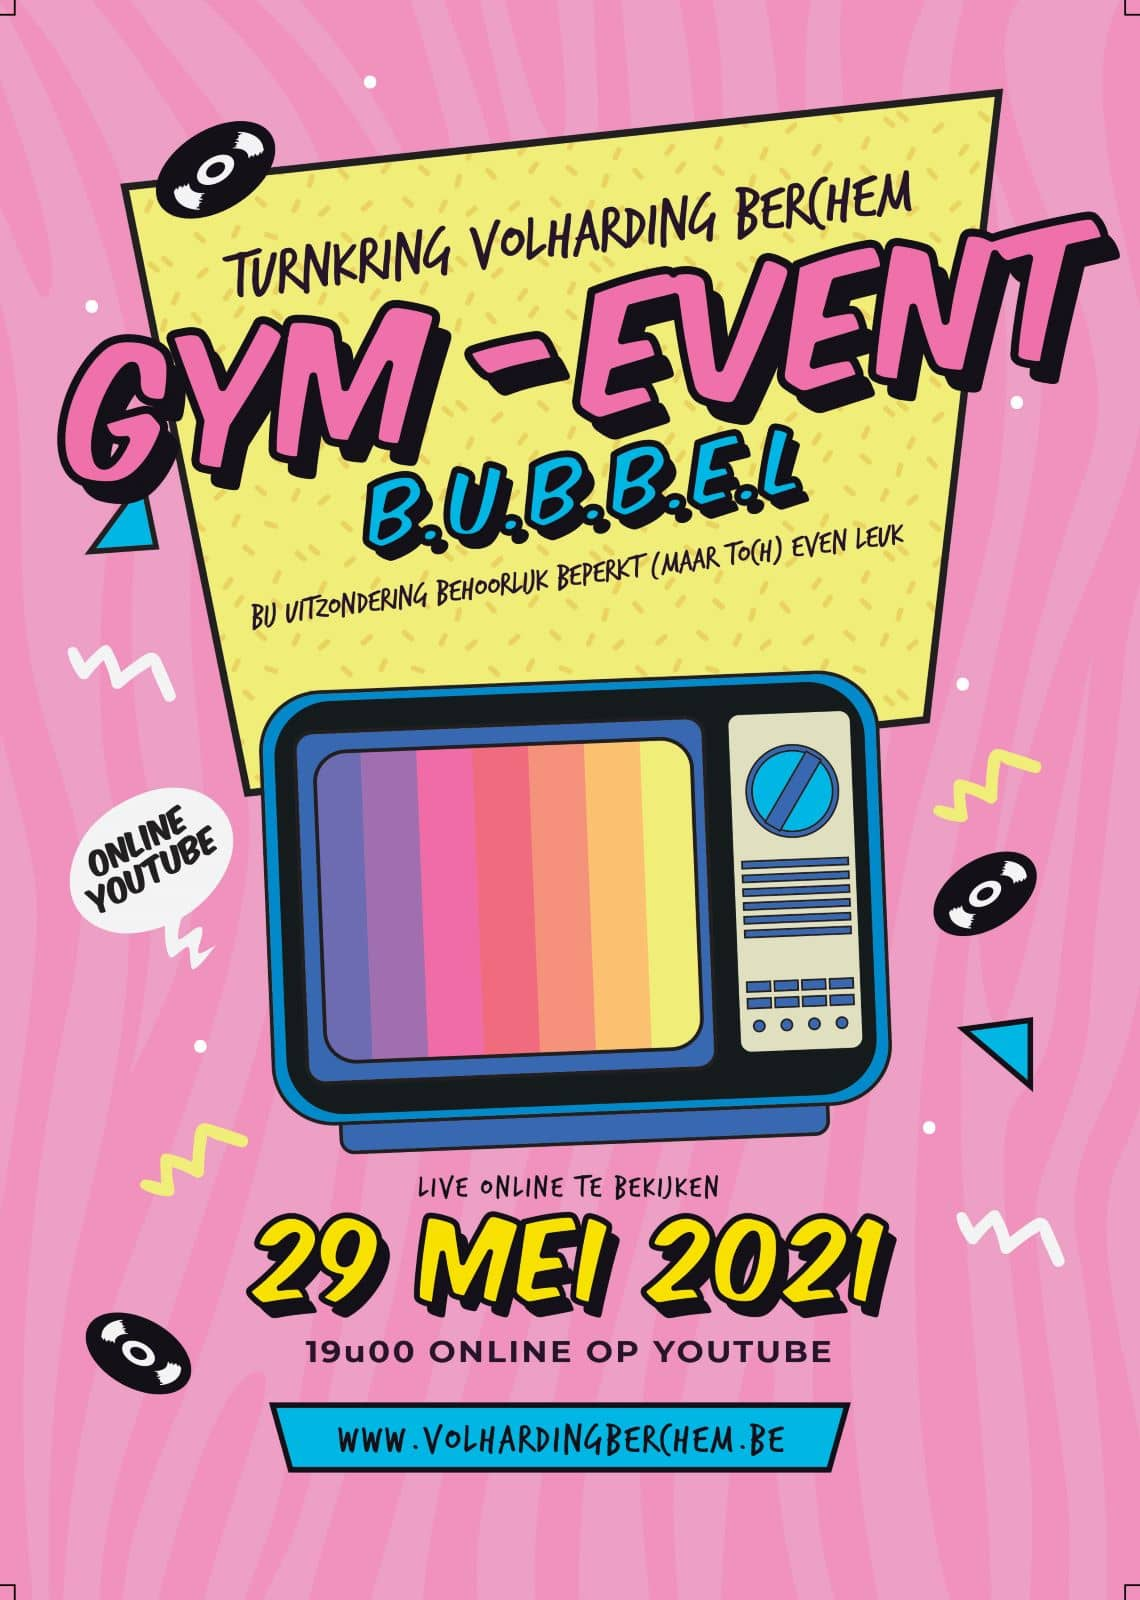 Gym-Event Bubbel 2021 YouTube